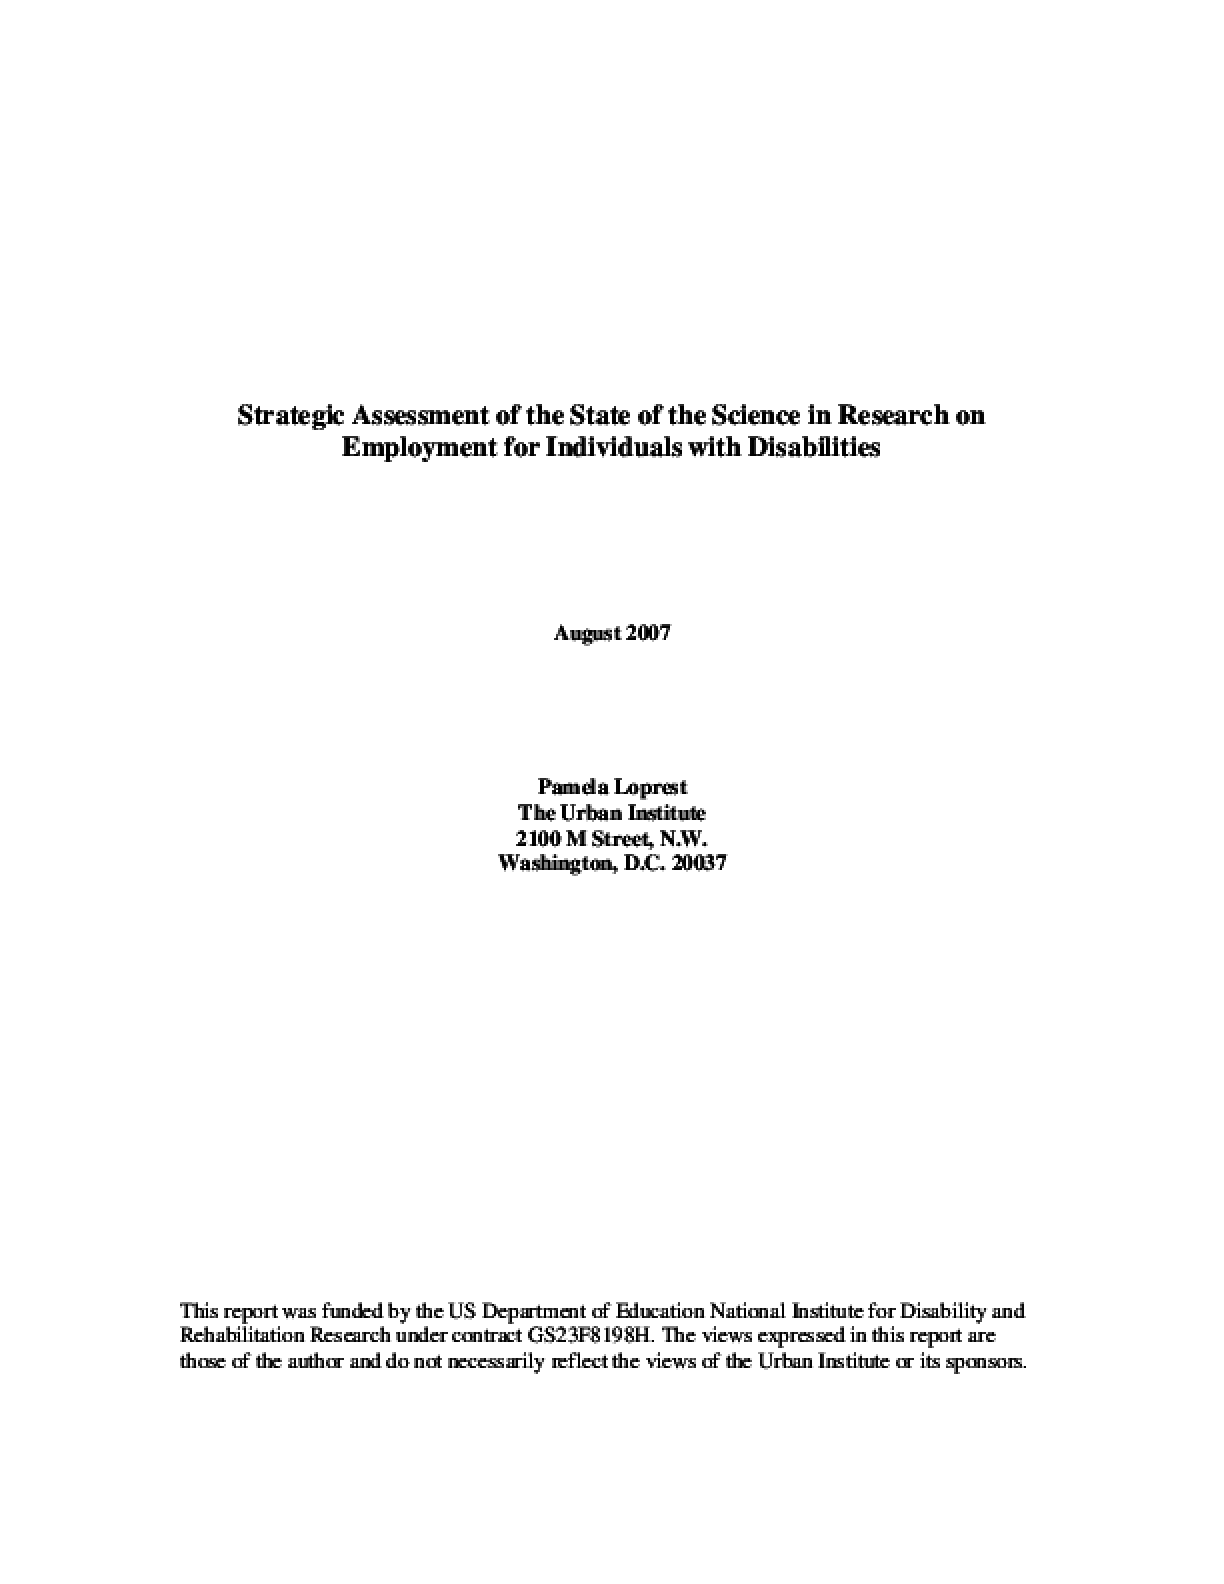 Strategic Assessment of the State of the Science in Research on Employment for Individuals with Disabilities